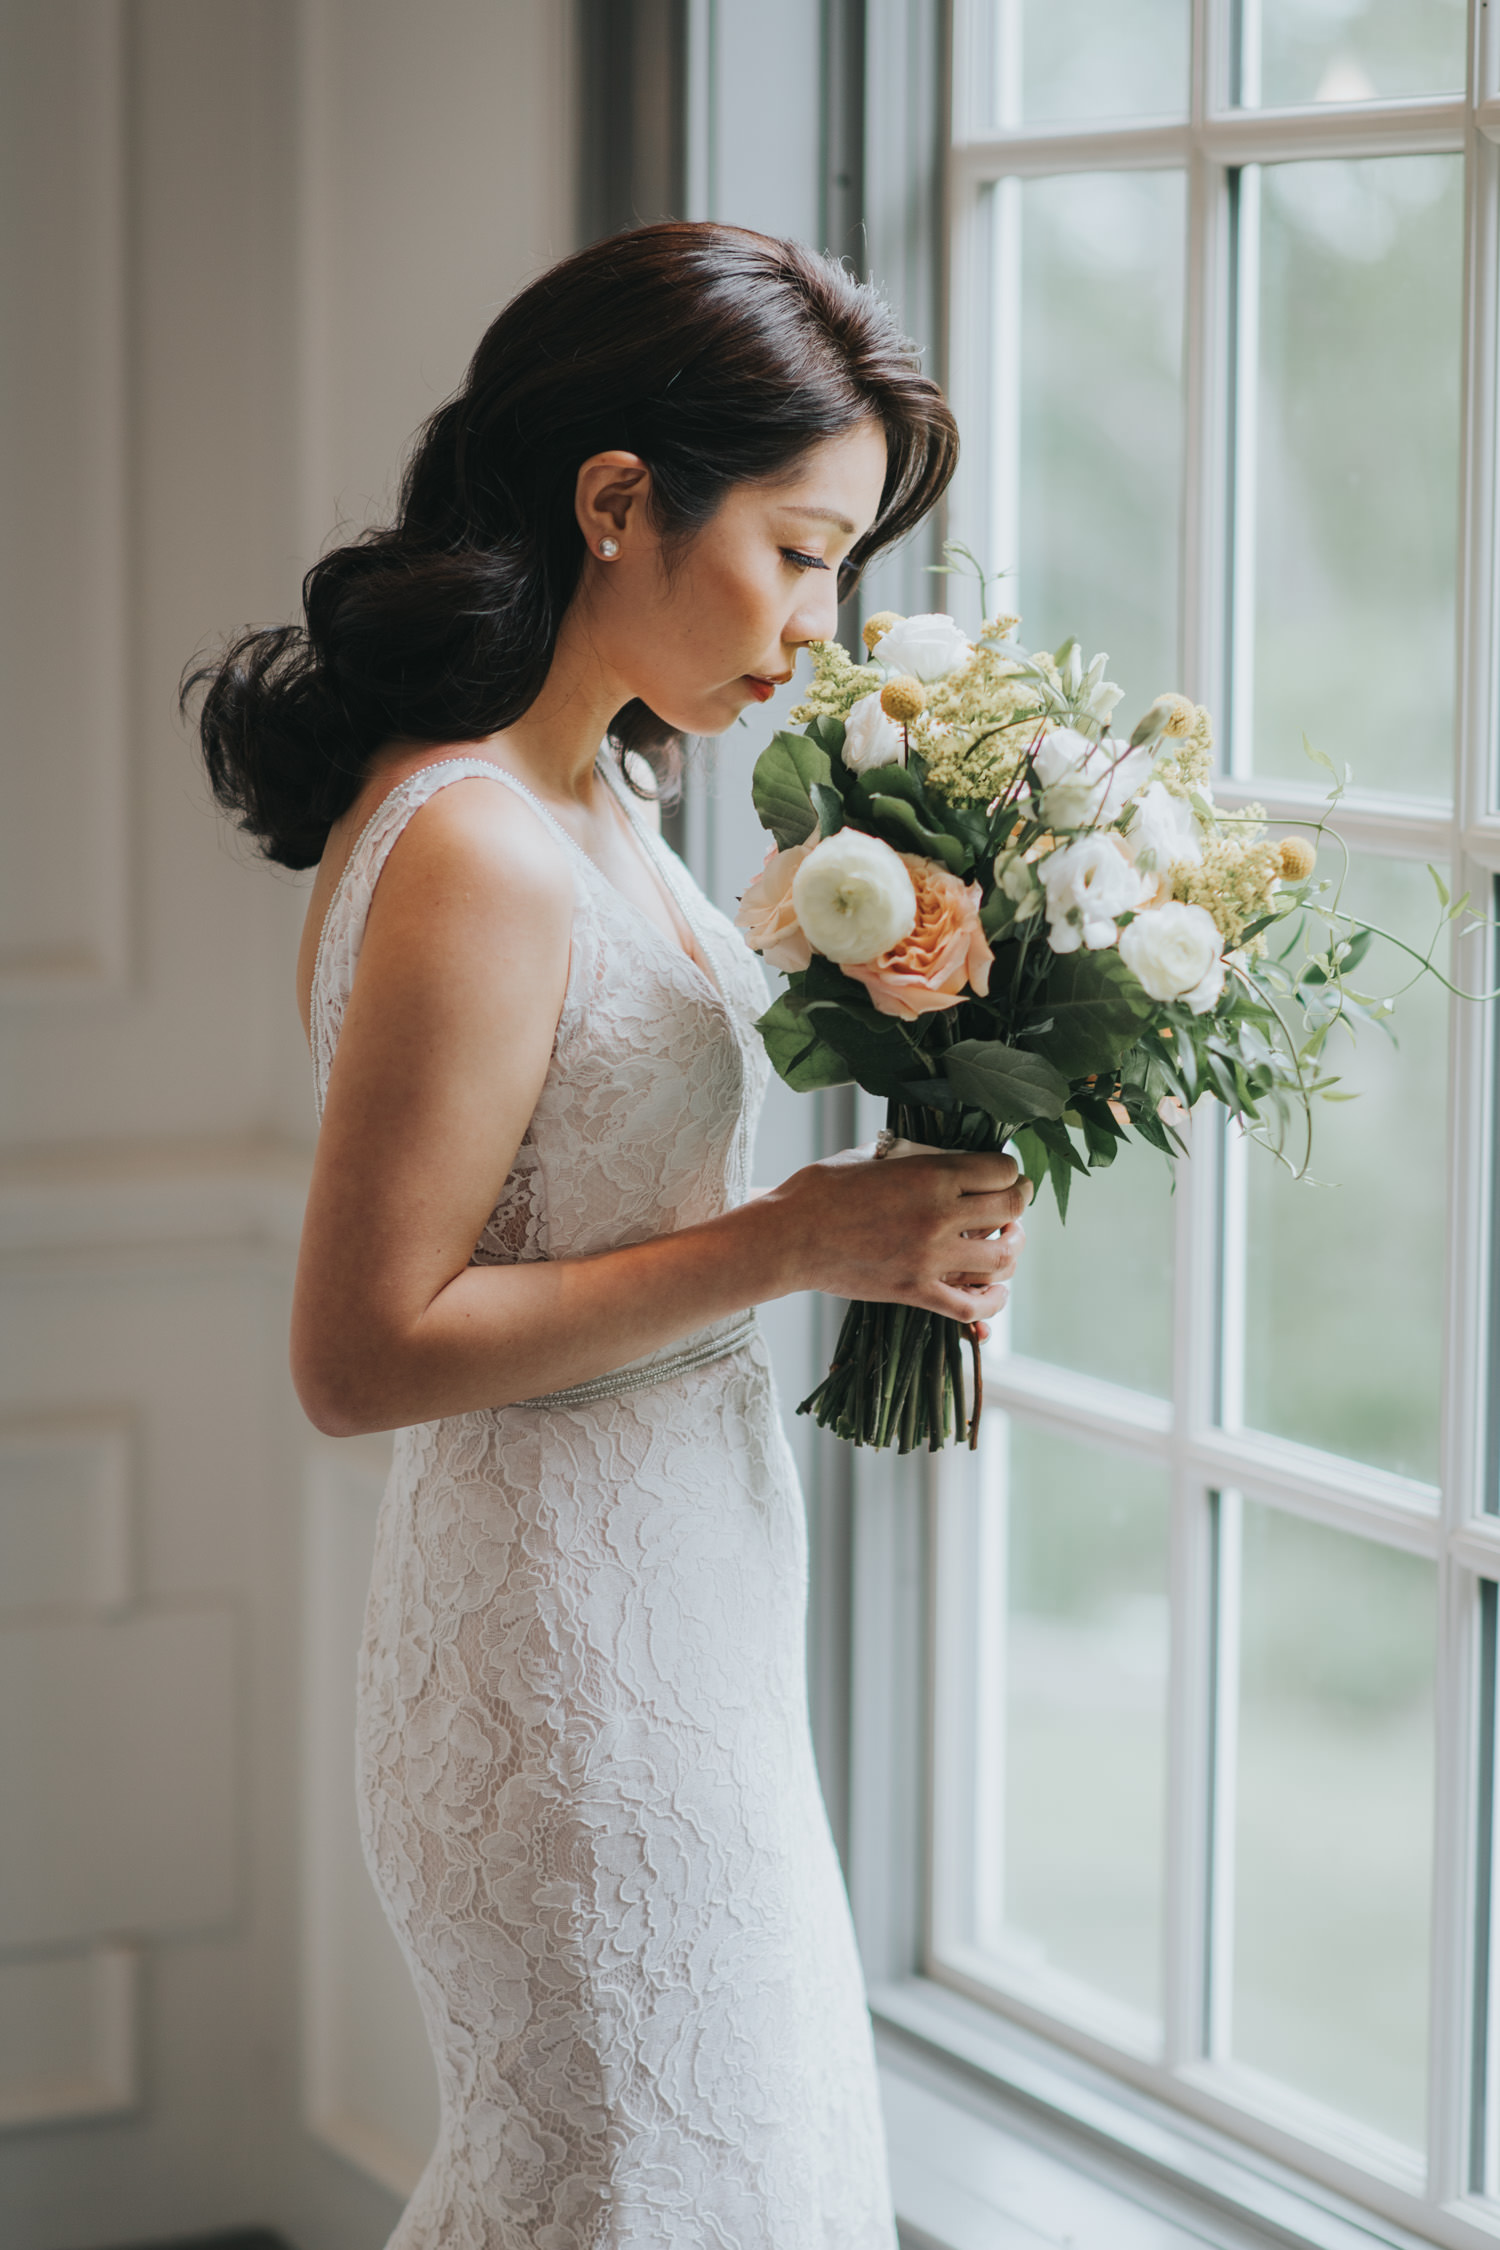 Doctor's House wedding bride getting ready floral bouquet